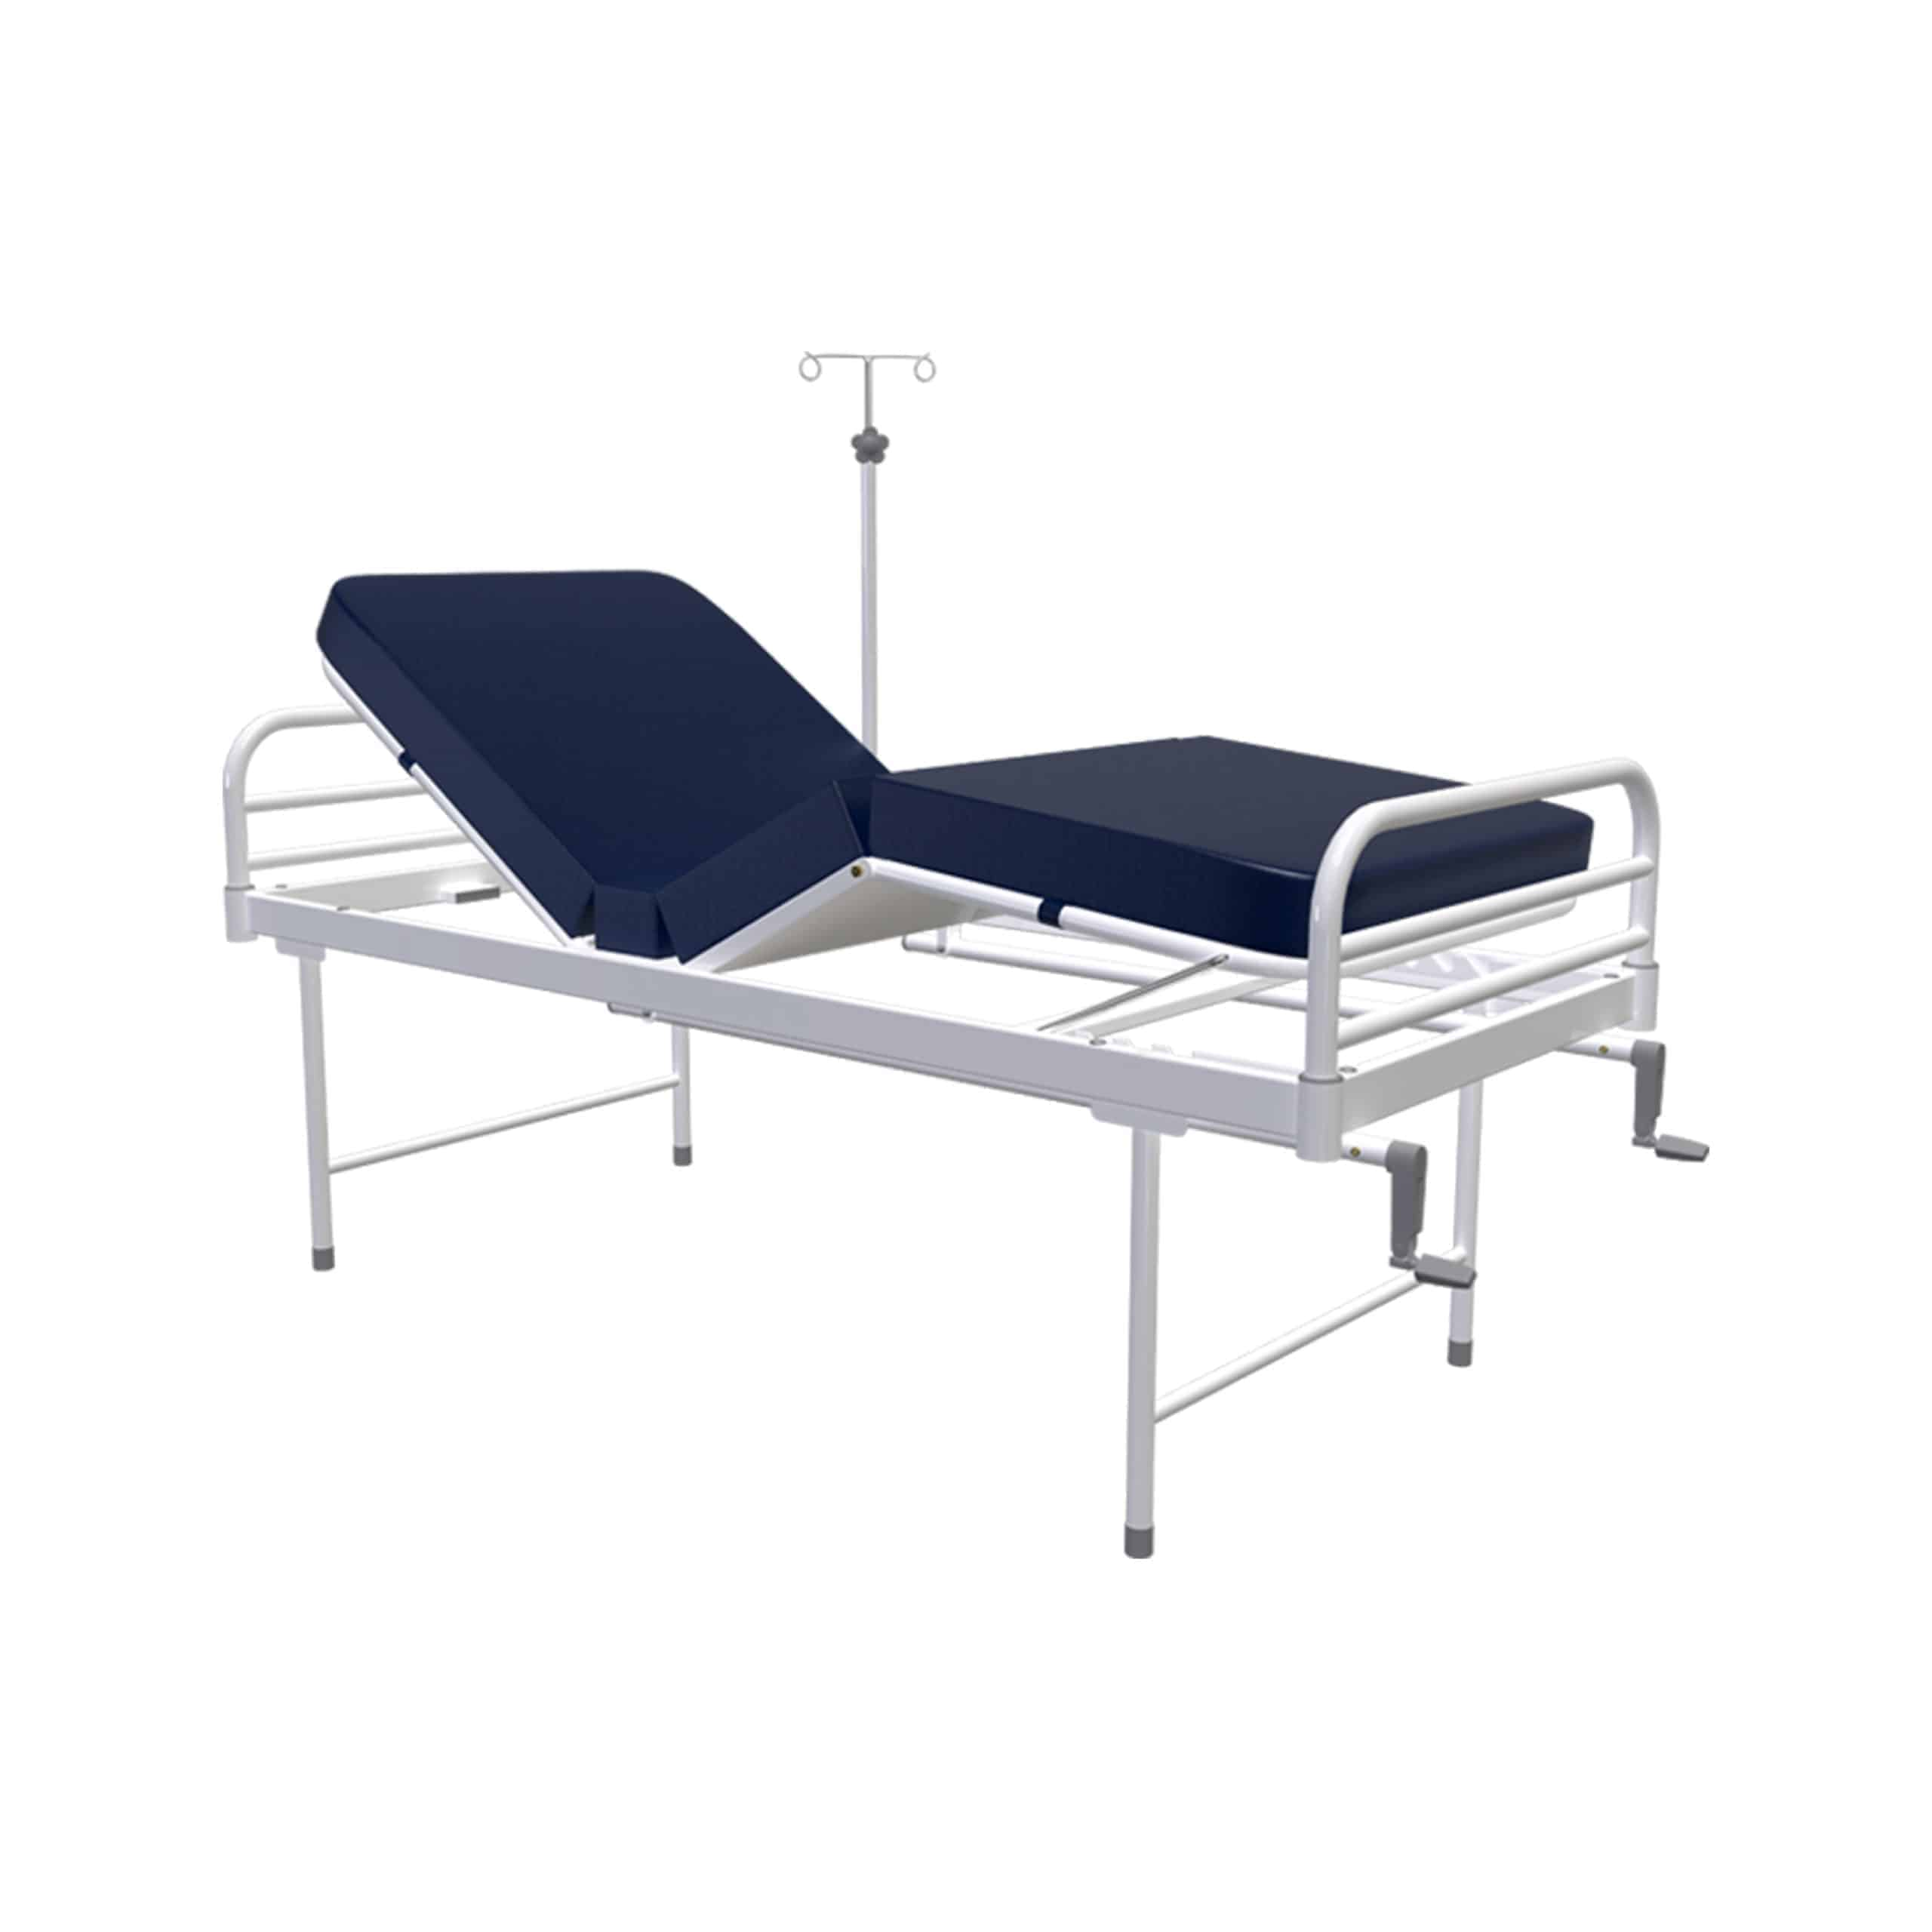 White colour Medical Examination Couch with Blue bed and saline stand attached to it under white background